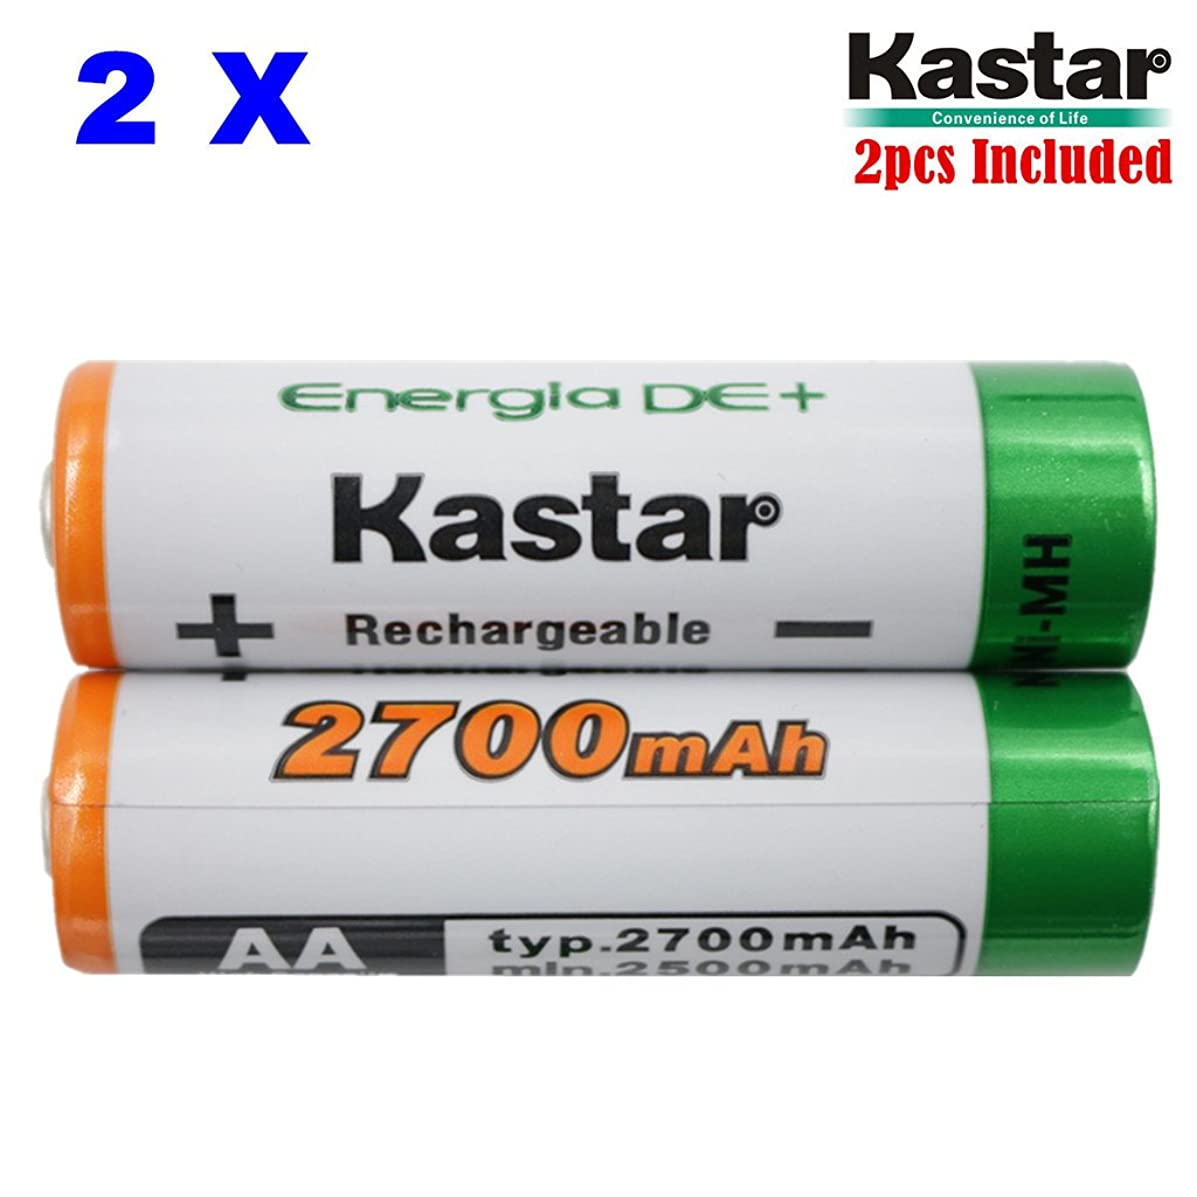 Kastar AA (2-Pack) Ni-MH 2700mAh Super High-Capacity Rechargeable Batteries Pre-Charged.